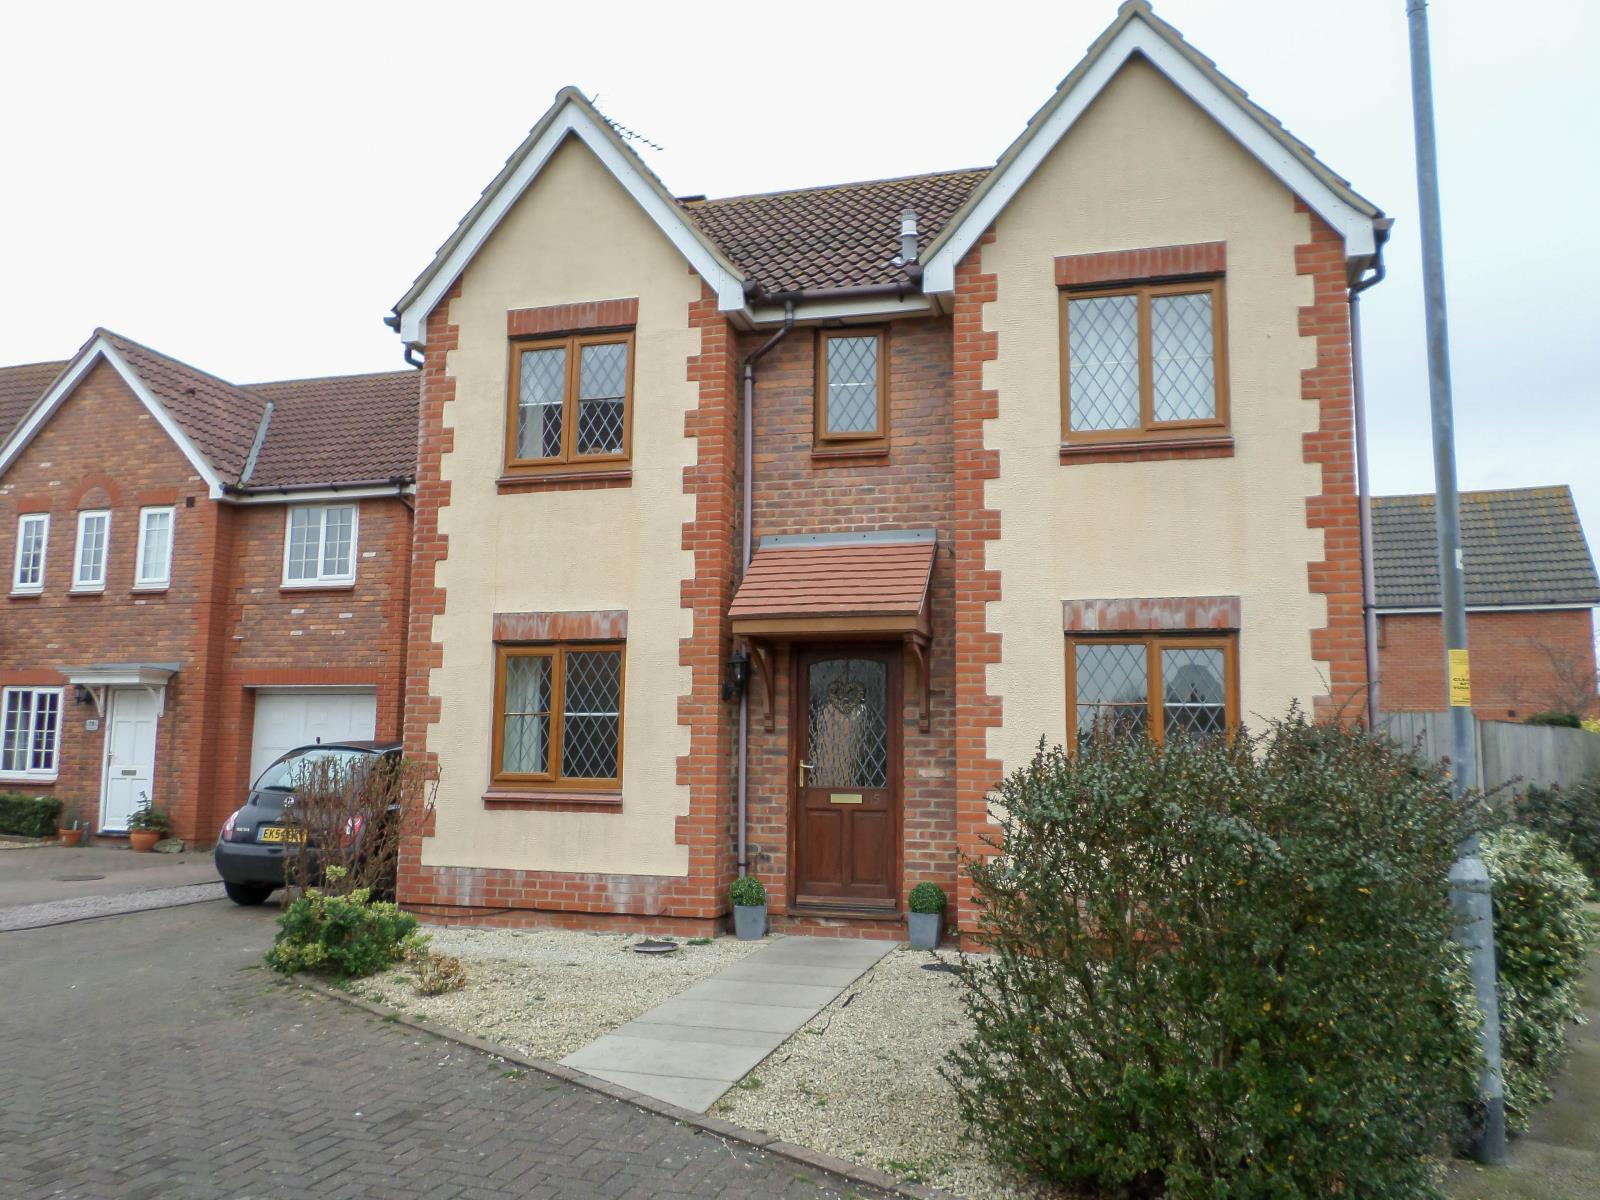 4 bed house to rent in Peake Avenue, Kirby Cross, Frinton-On-Sea, CO13